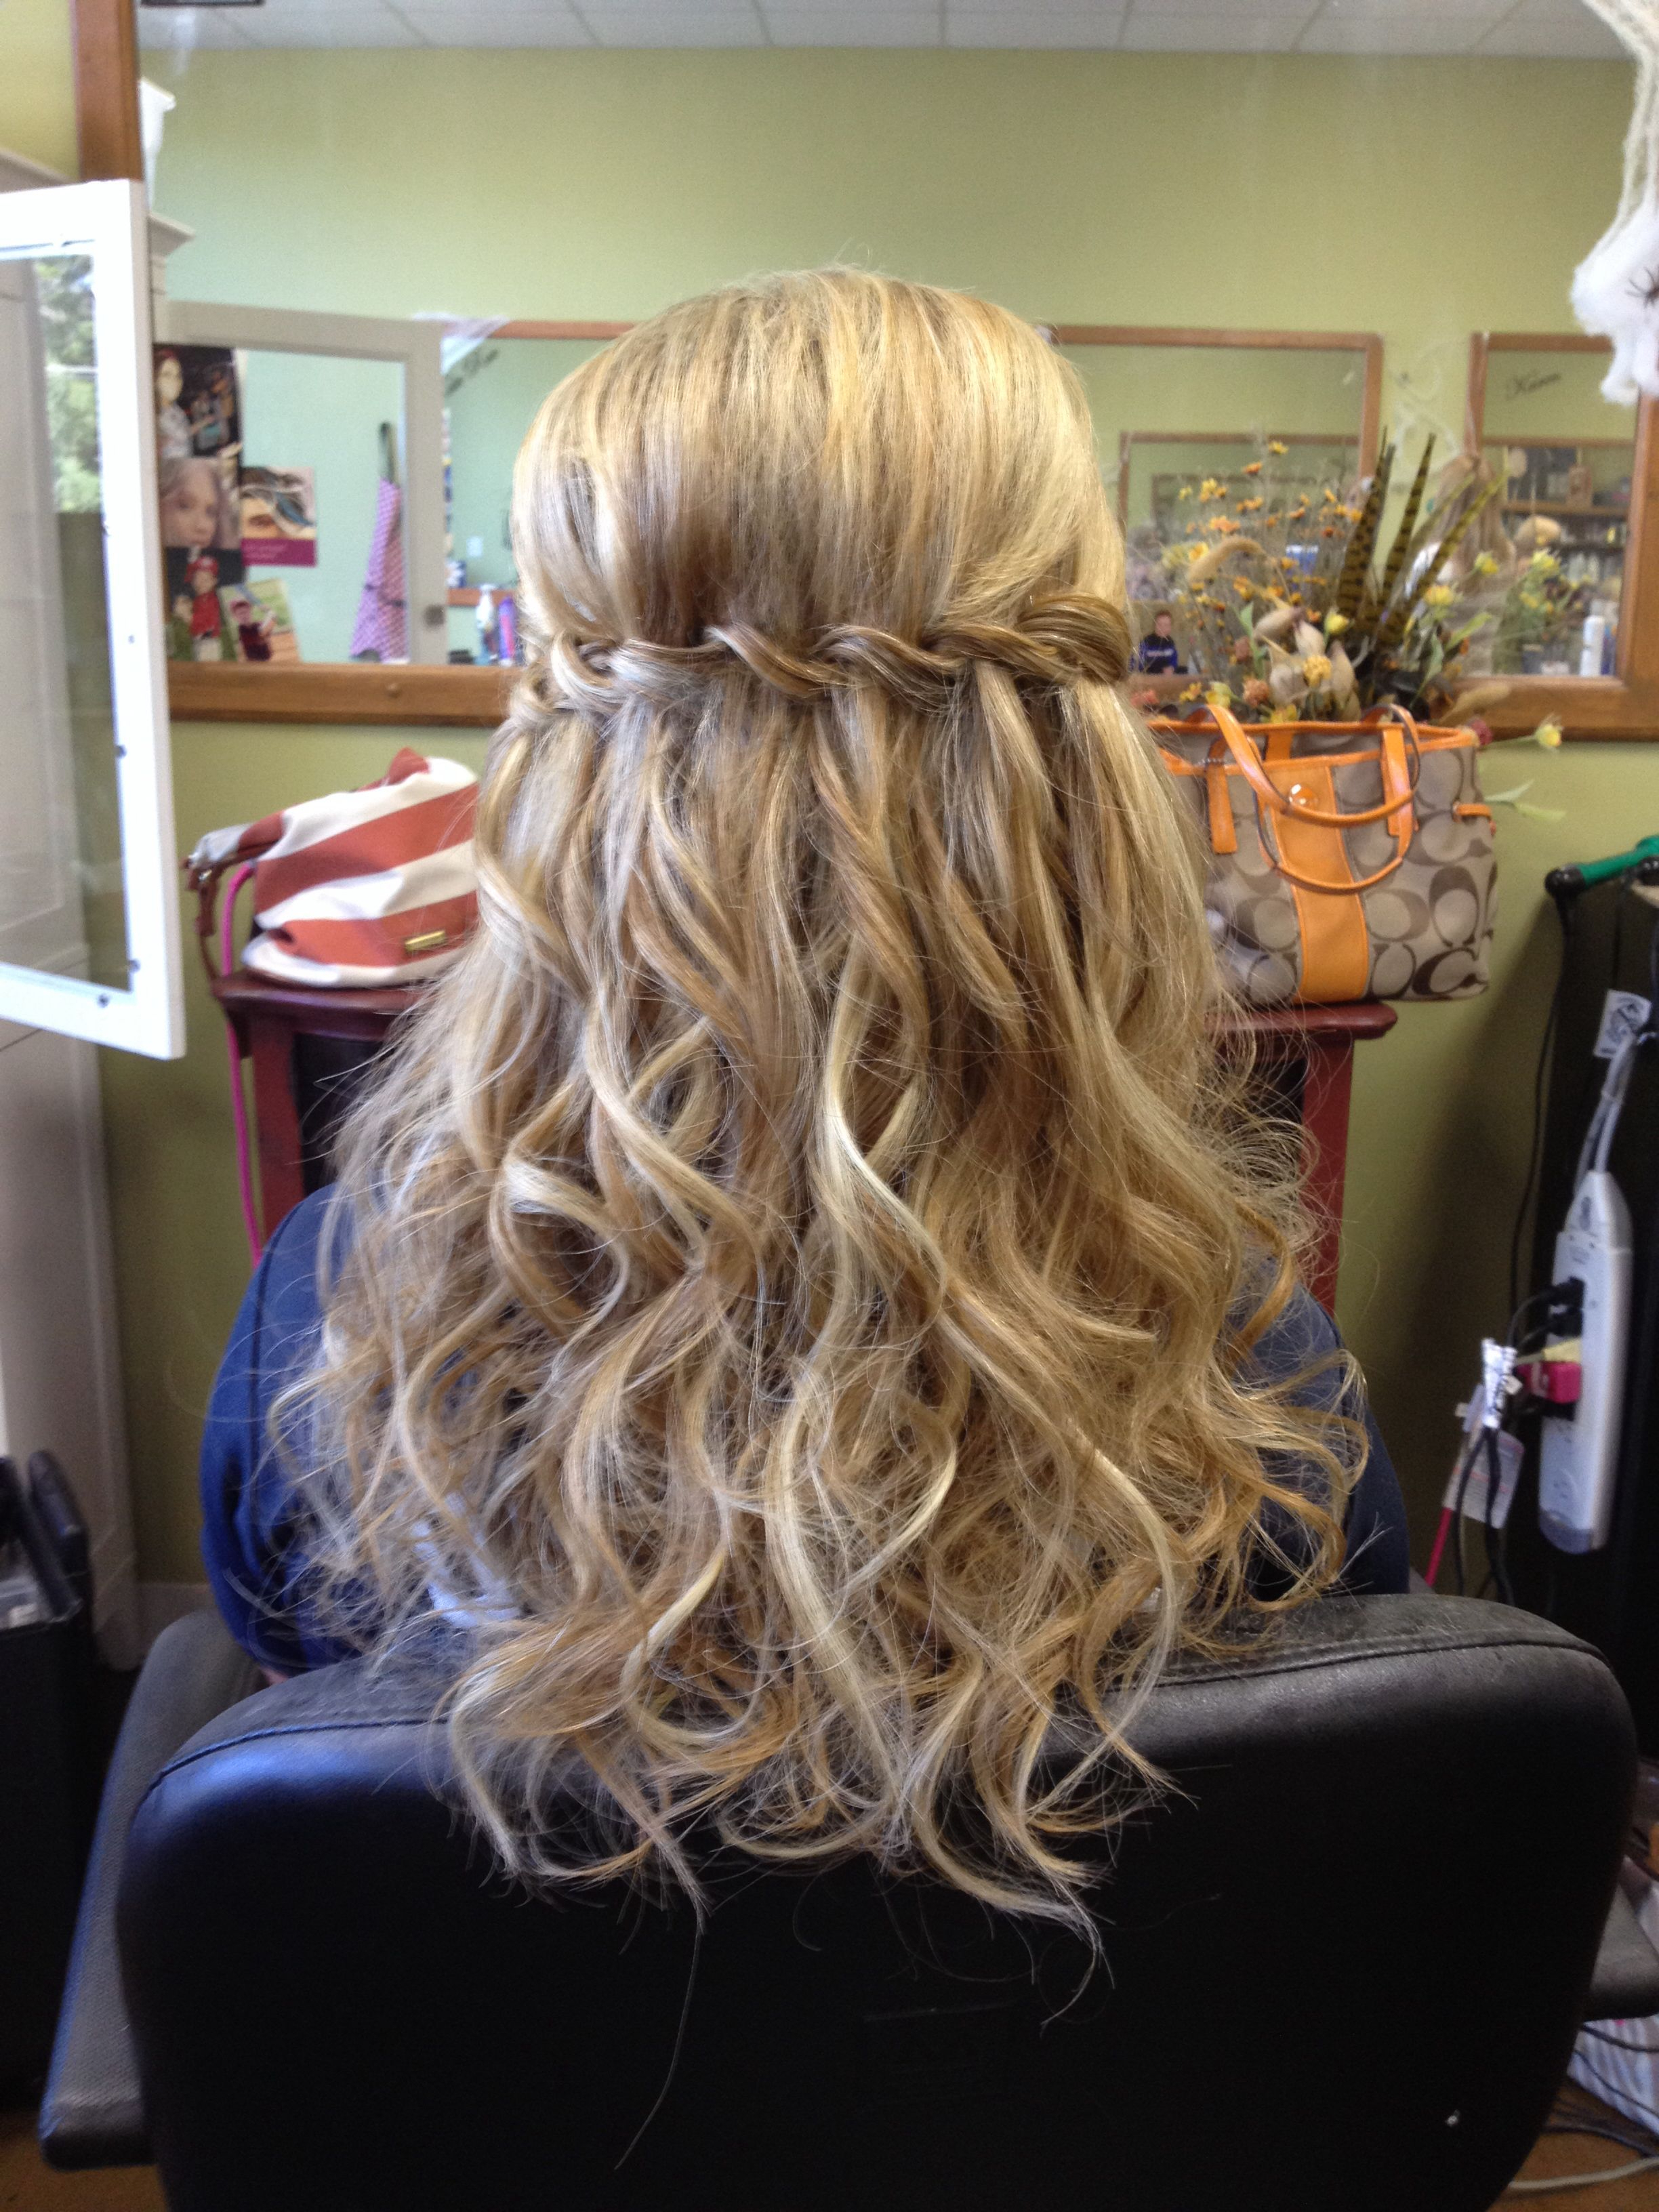 2017 Chic Waterfall Braid Prom Updos Within Waterfall Braid With Extensions, Curls, Half Up, Bridal Party (View 8 of 20)